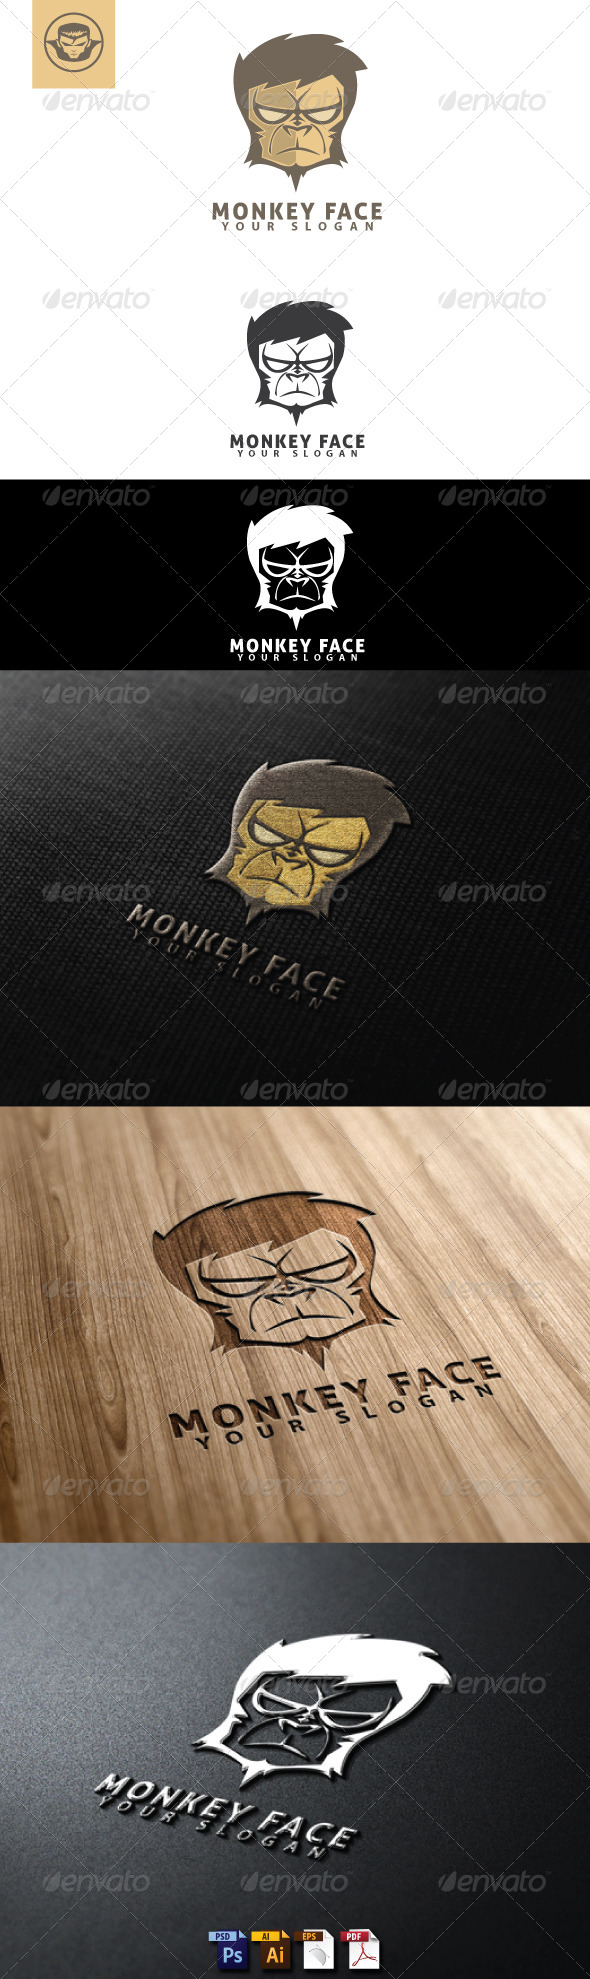 Monkey Face Logo Template - Animals Logo Templates